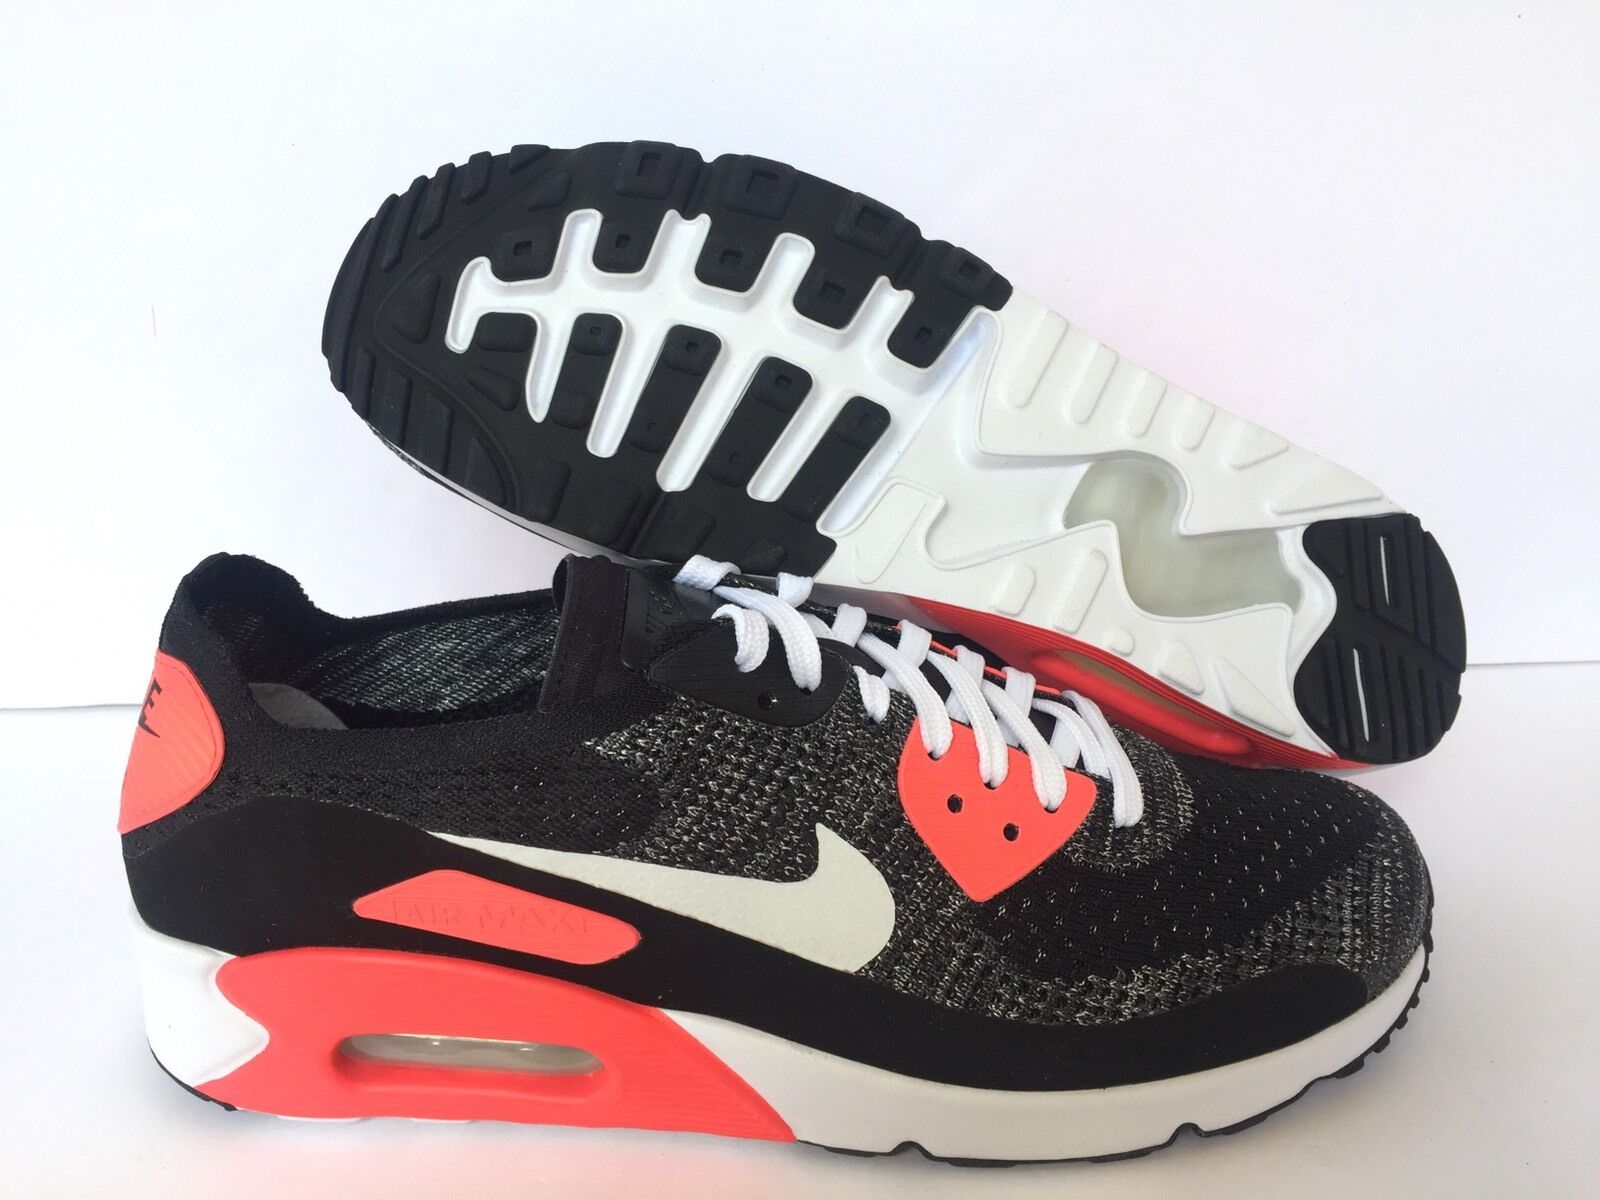 NIKEiD AIR MAX  BLACK/SOLAR RED BRAND NEW Price reduction US MEN Price reduction Seasonal price cuts, discount benefits